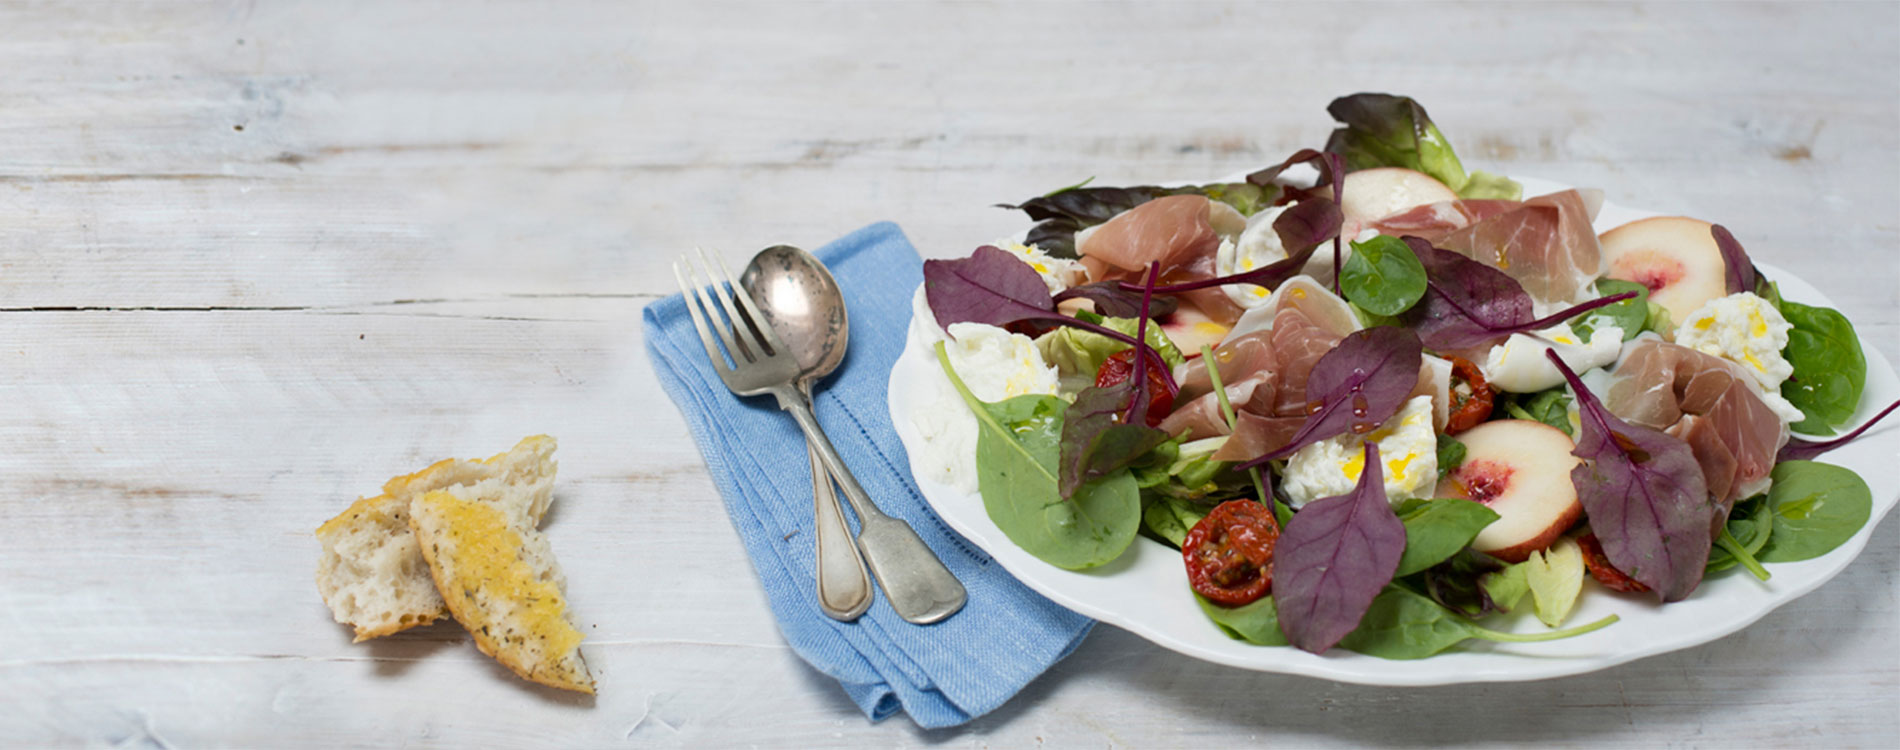 Salad with rapeseed oil said dressing